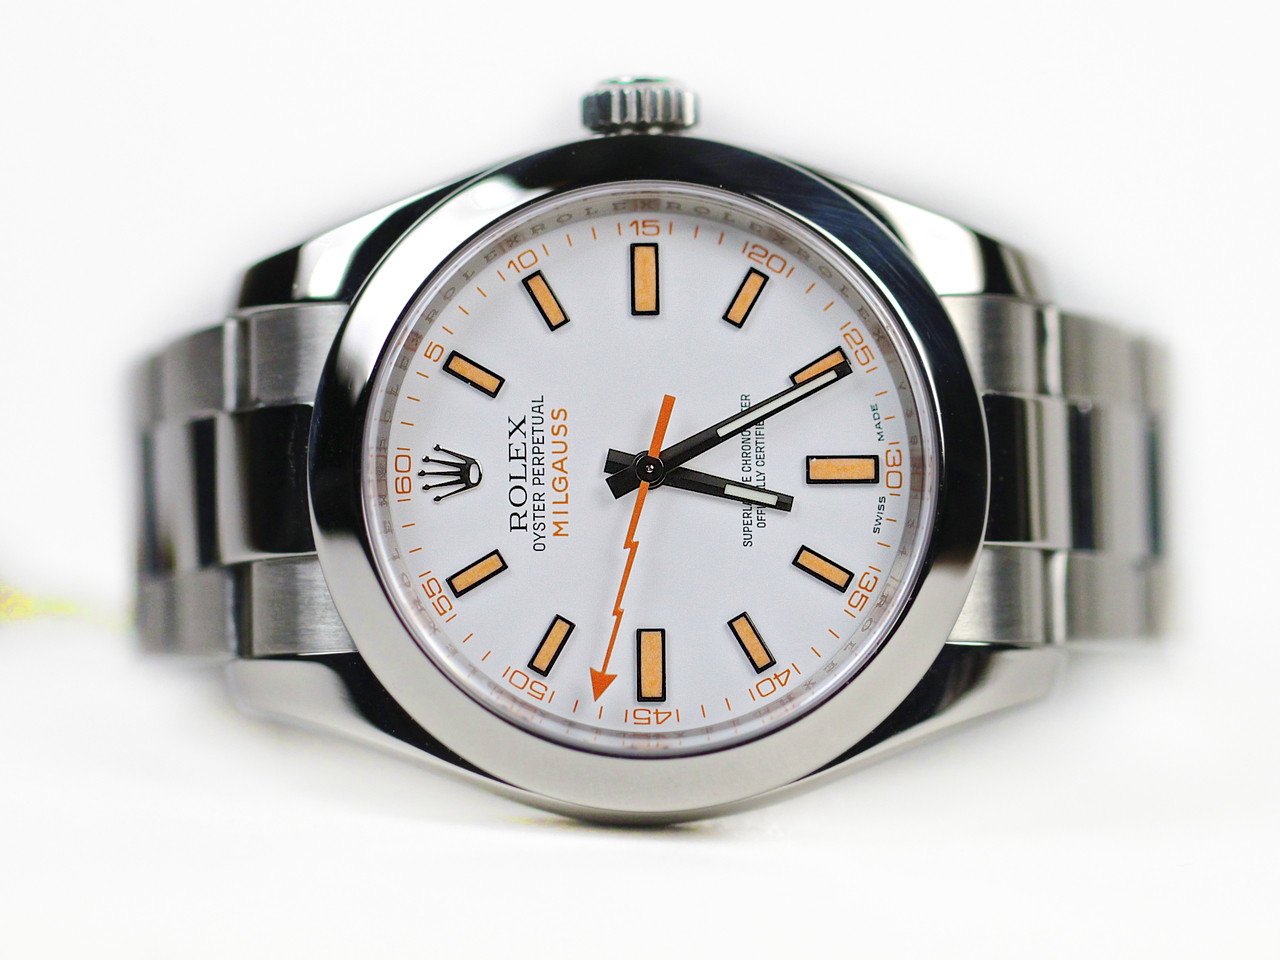 f609b7cbf89 Rolex Watch - Milgauss Pre-owned 116400 from Legend of Time Chicago Watch  Center